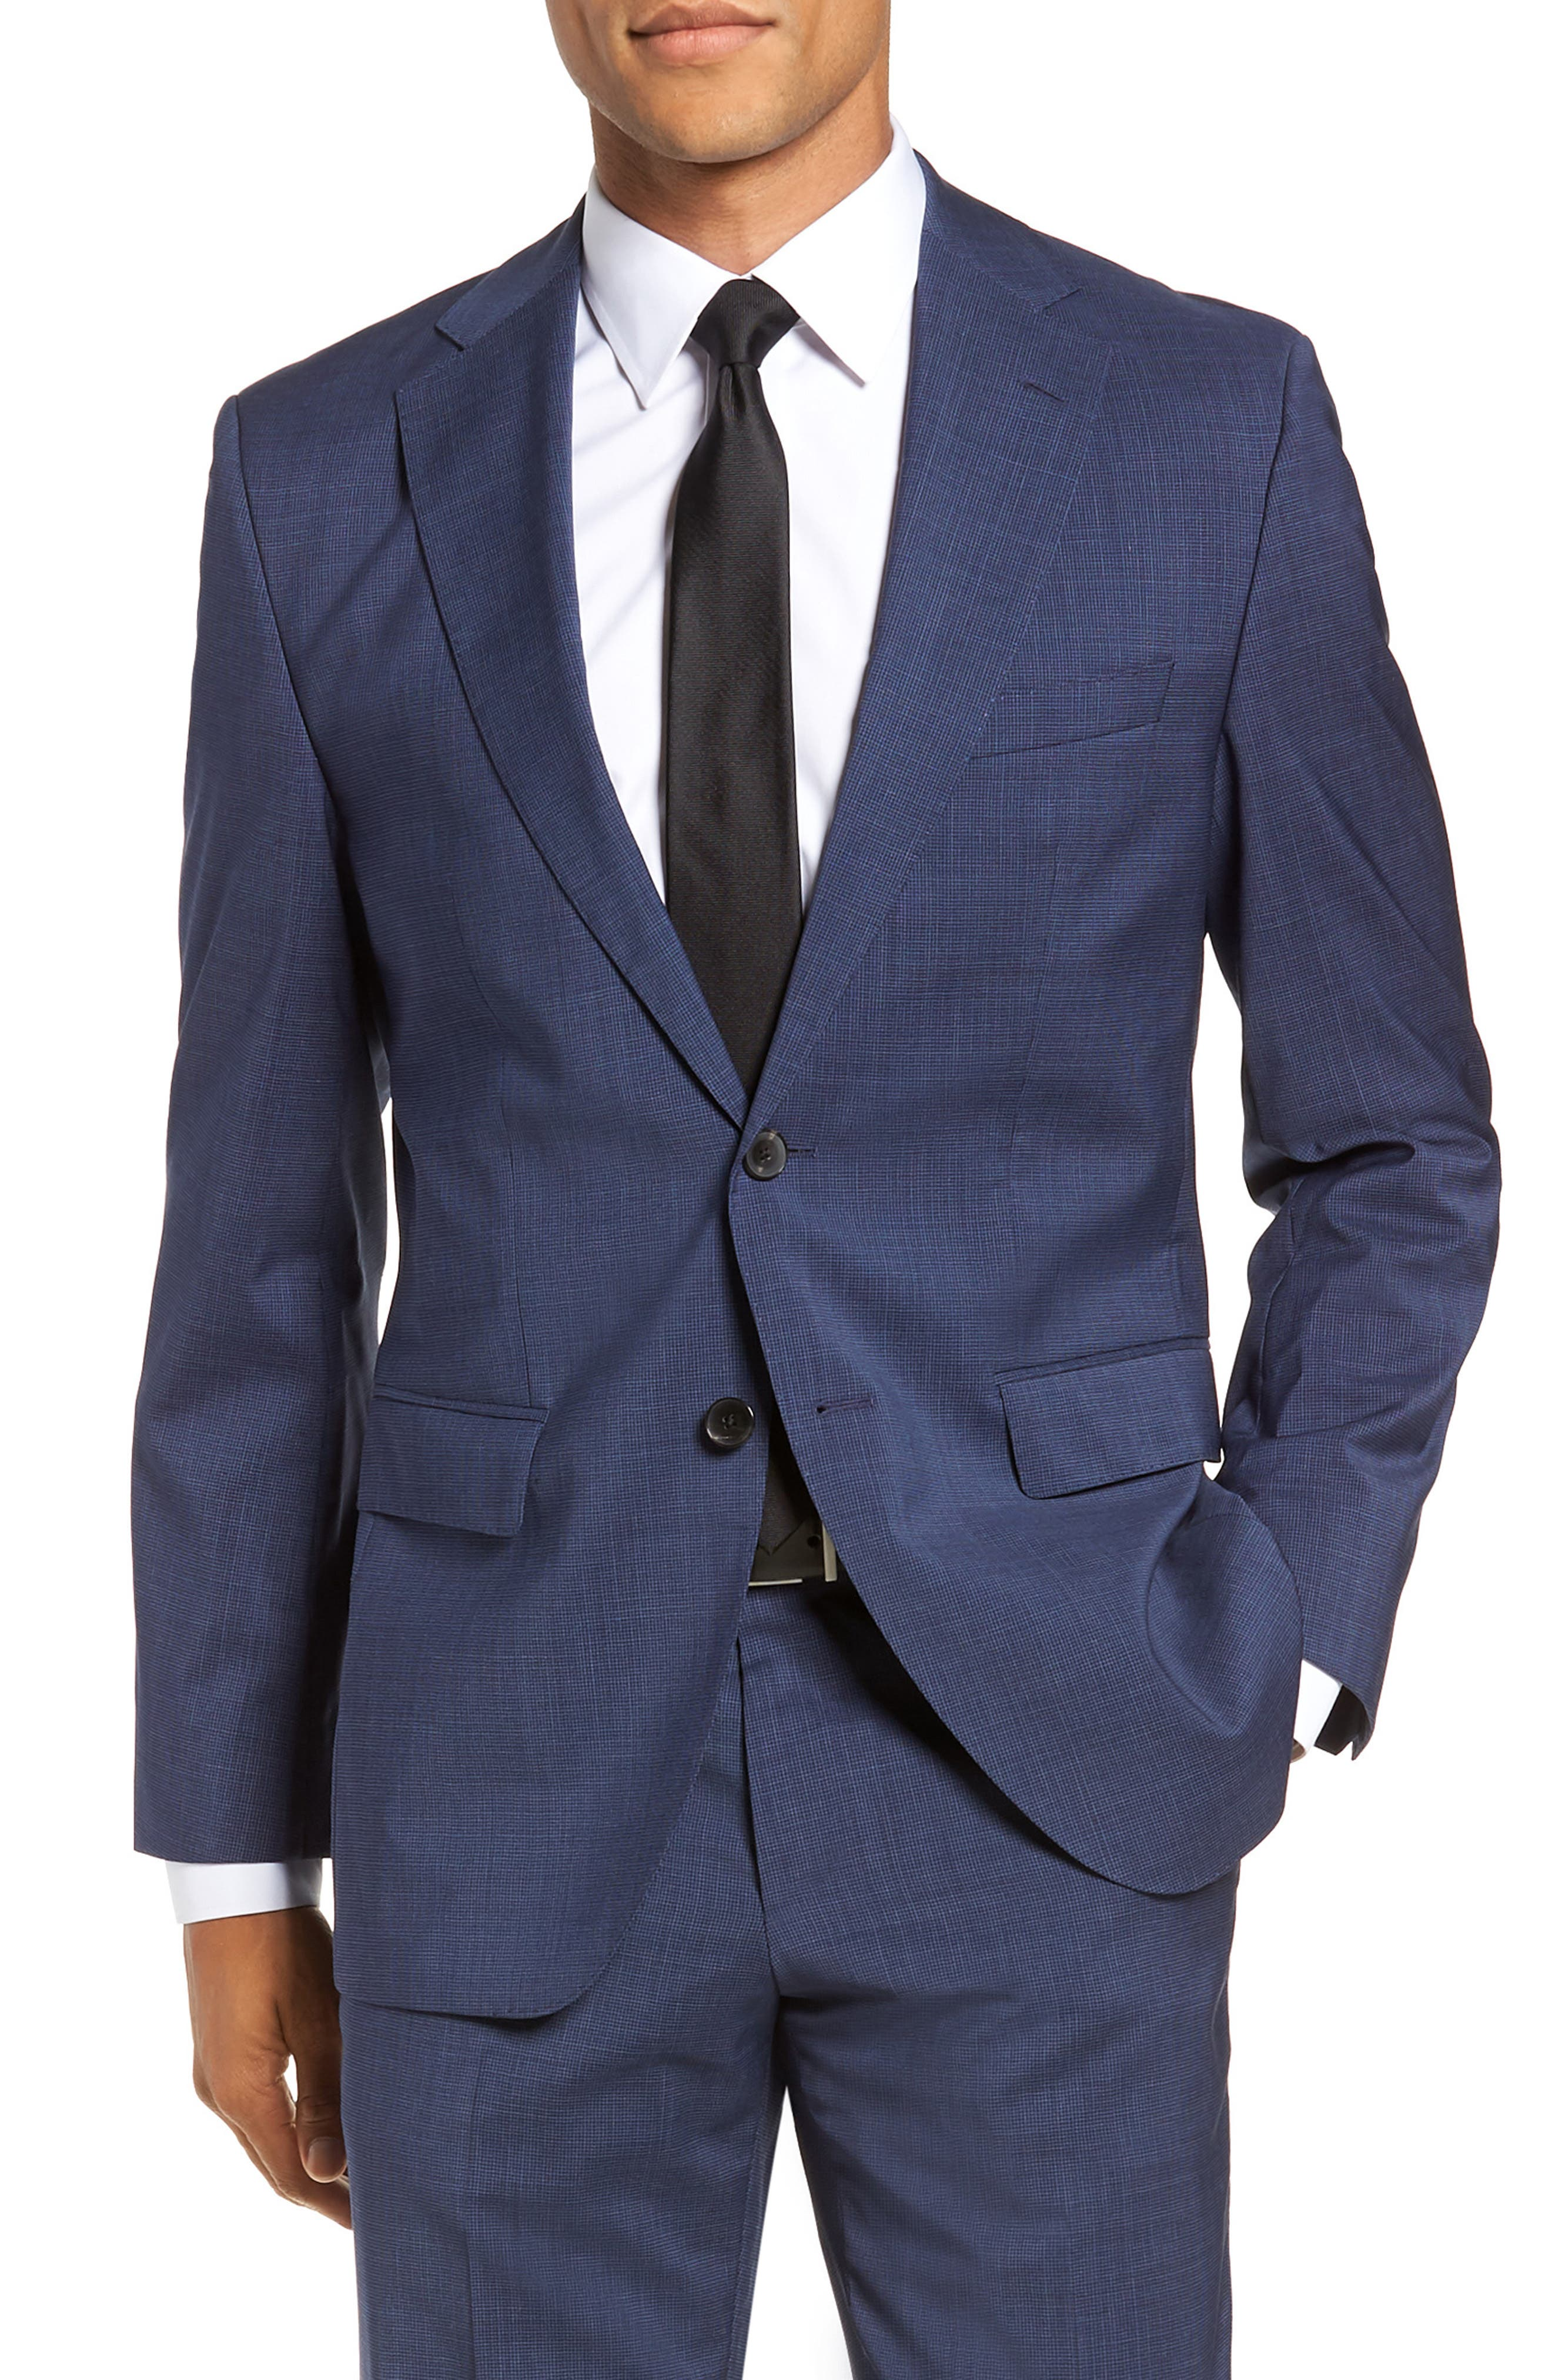 Johnstons/Lenon Classic Fit Houndstooth Wool Suit,                             Alternate thumbnail 6, color,                             BLUE